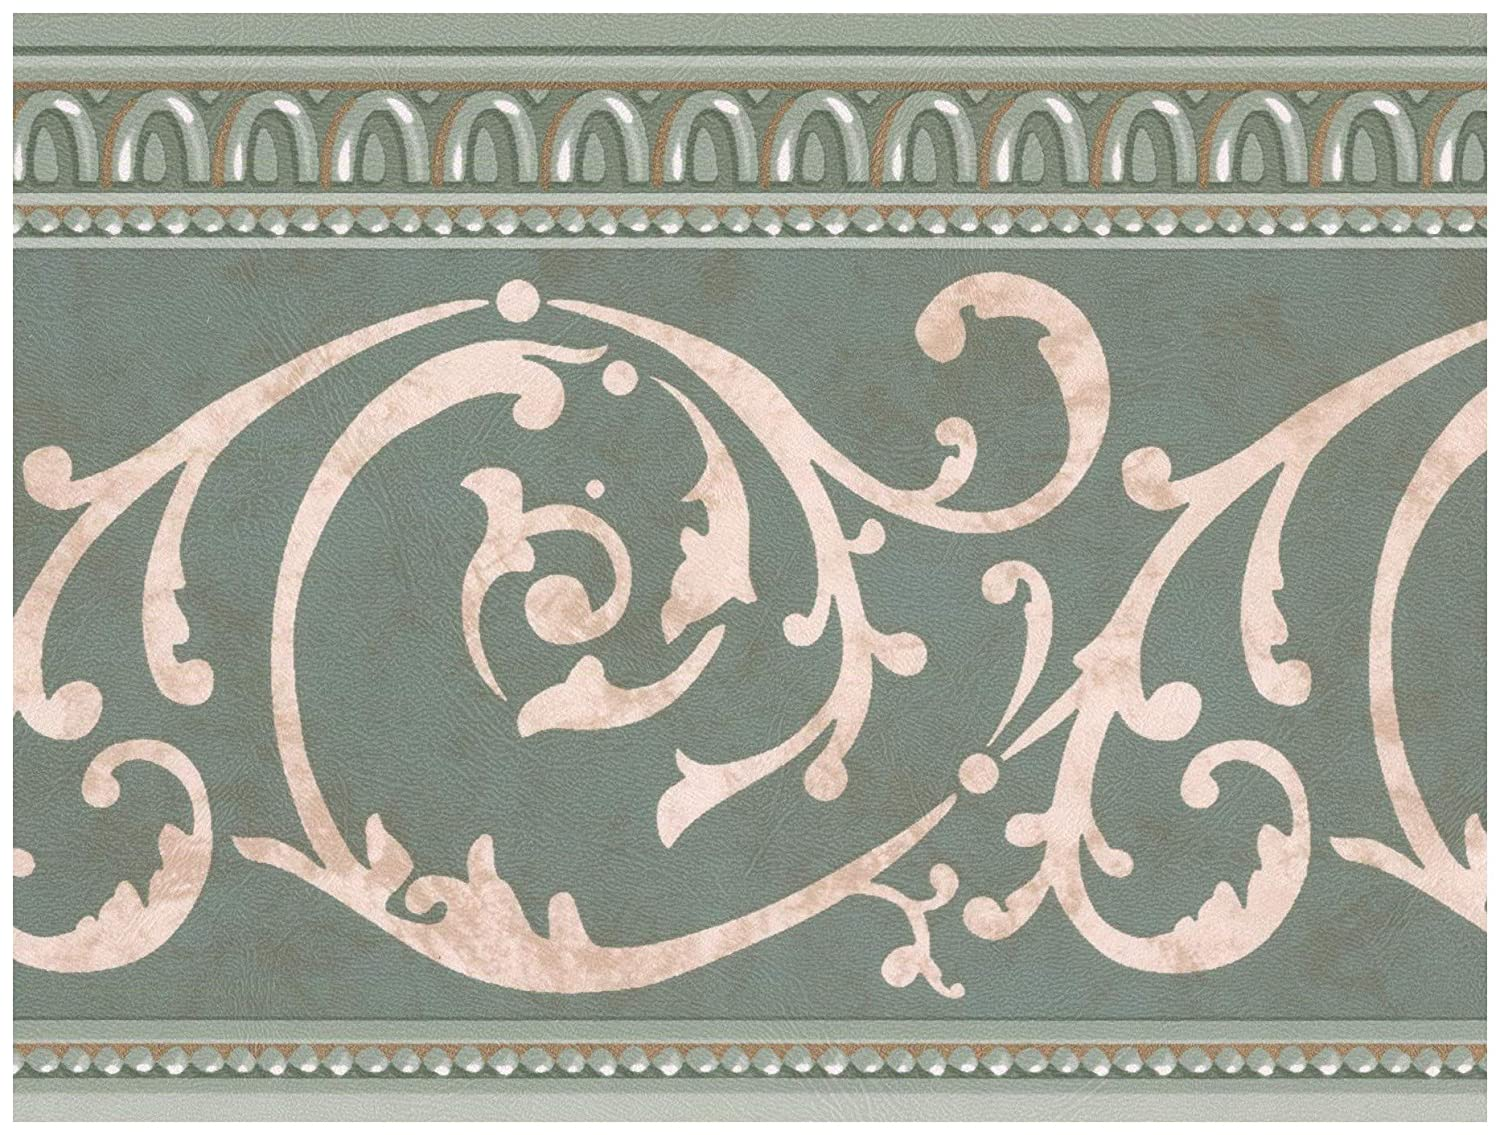 Amazon.com: Wall Border - Sepia Damask ScPrepasted Rolls and ...